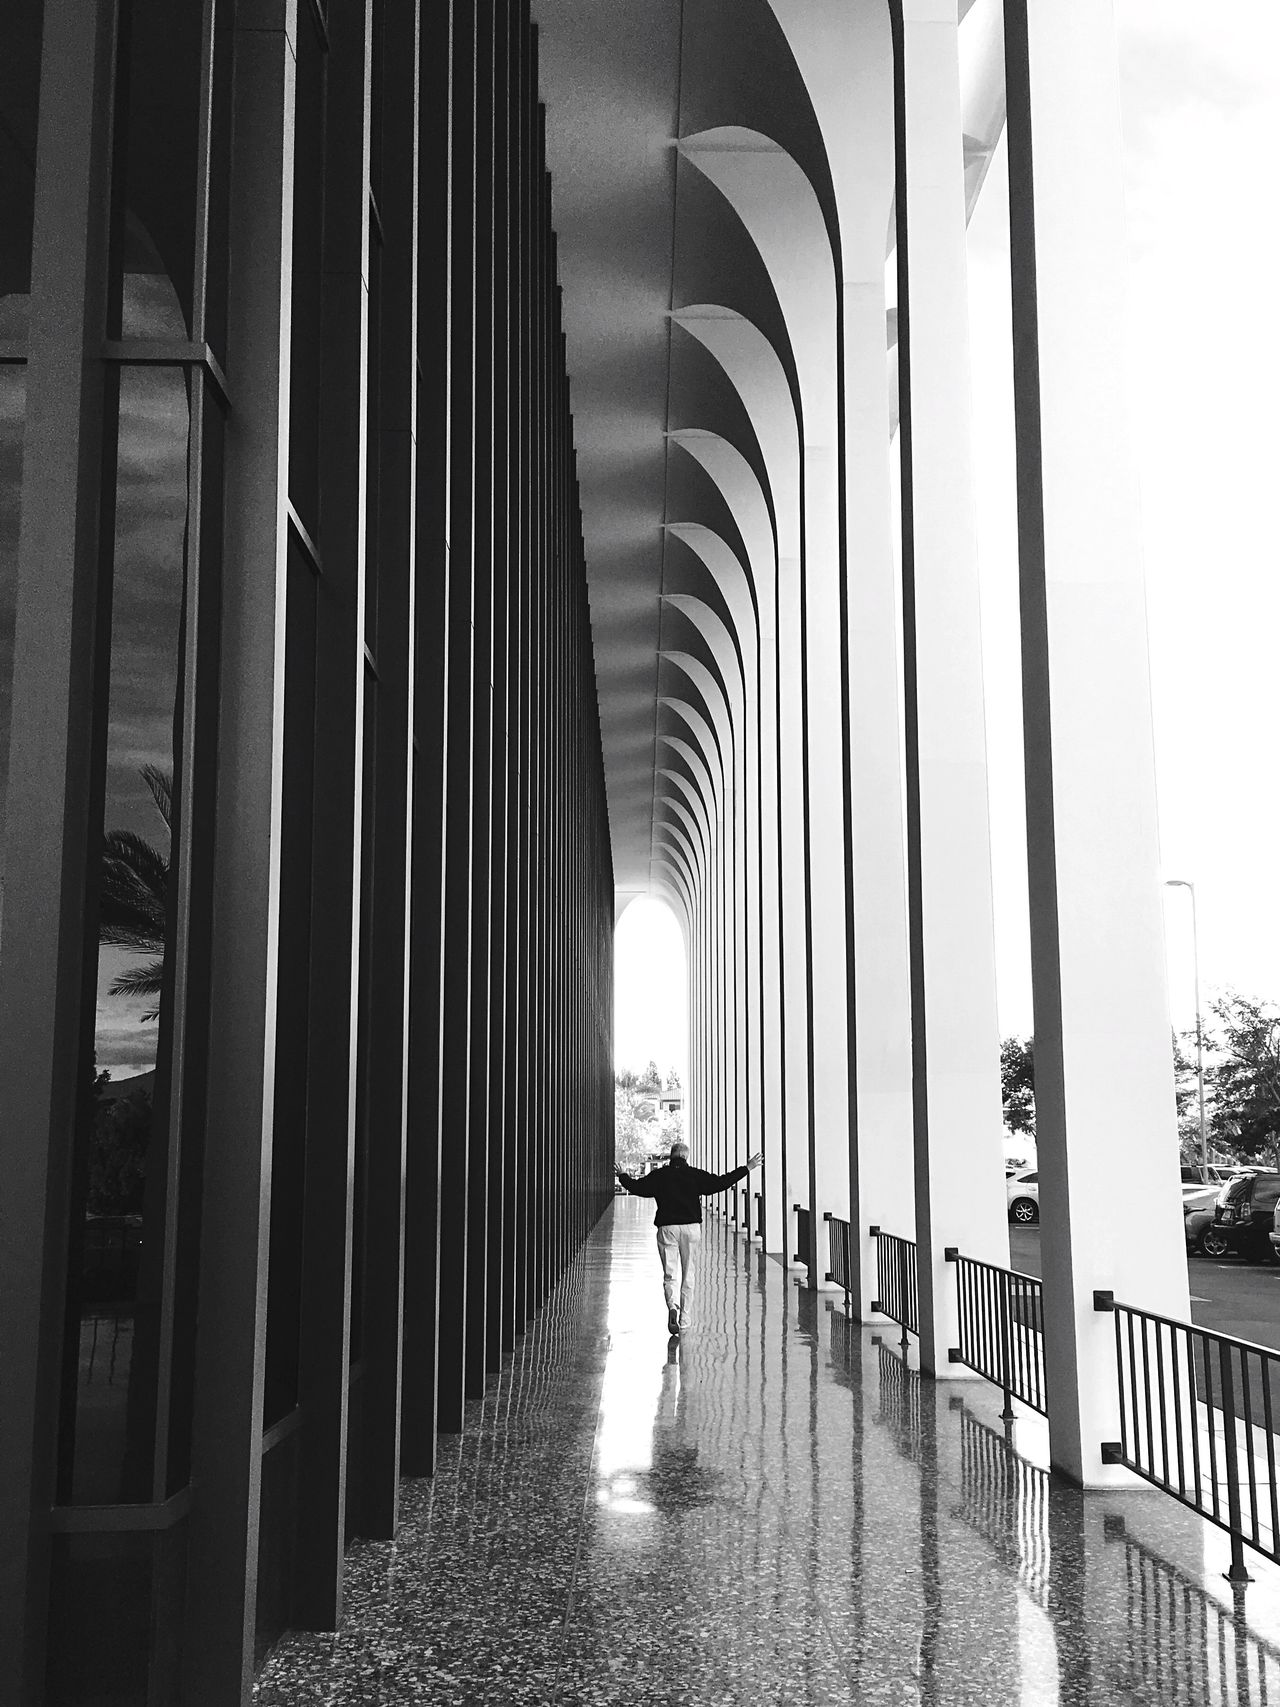 Arches and reflections Real People Full Length Lifestyles Architecture Built Structure Rear View One Person Walking Indoors  Arches Sixties Style Public Places Architecturephotography Architectural Column B&w Street Photography Streetphotography dDay tThe Way Forward Reflections And Shadows